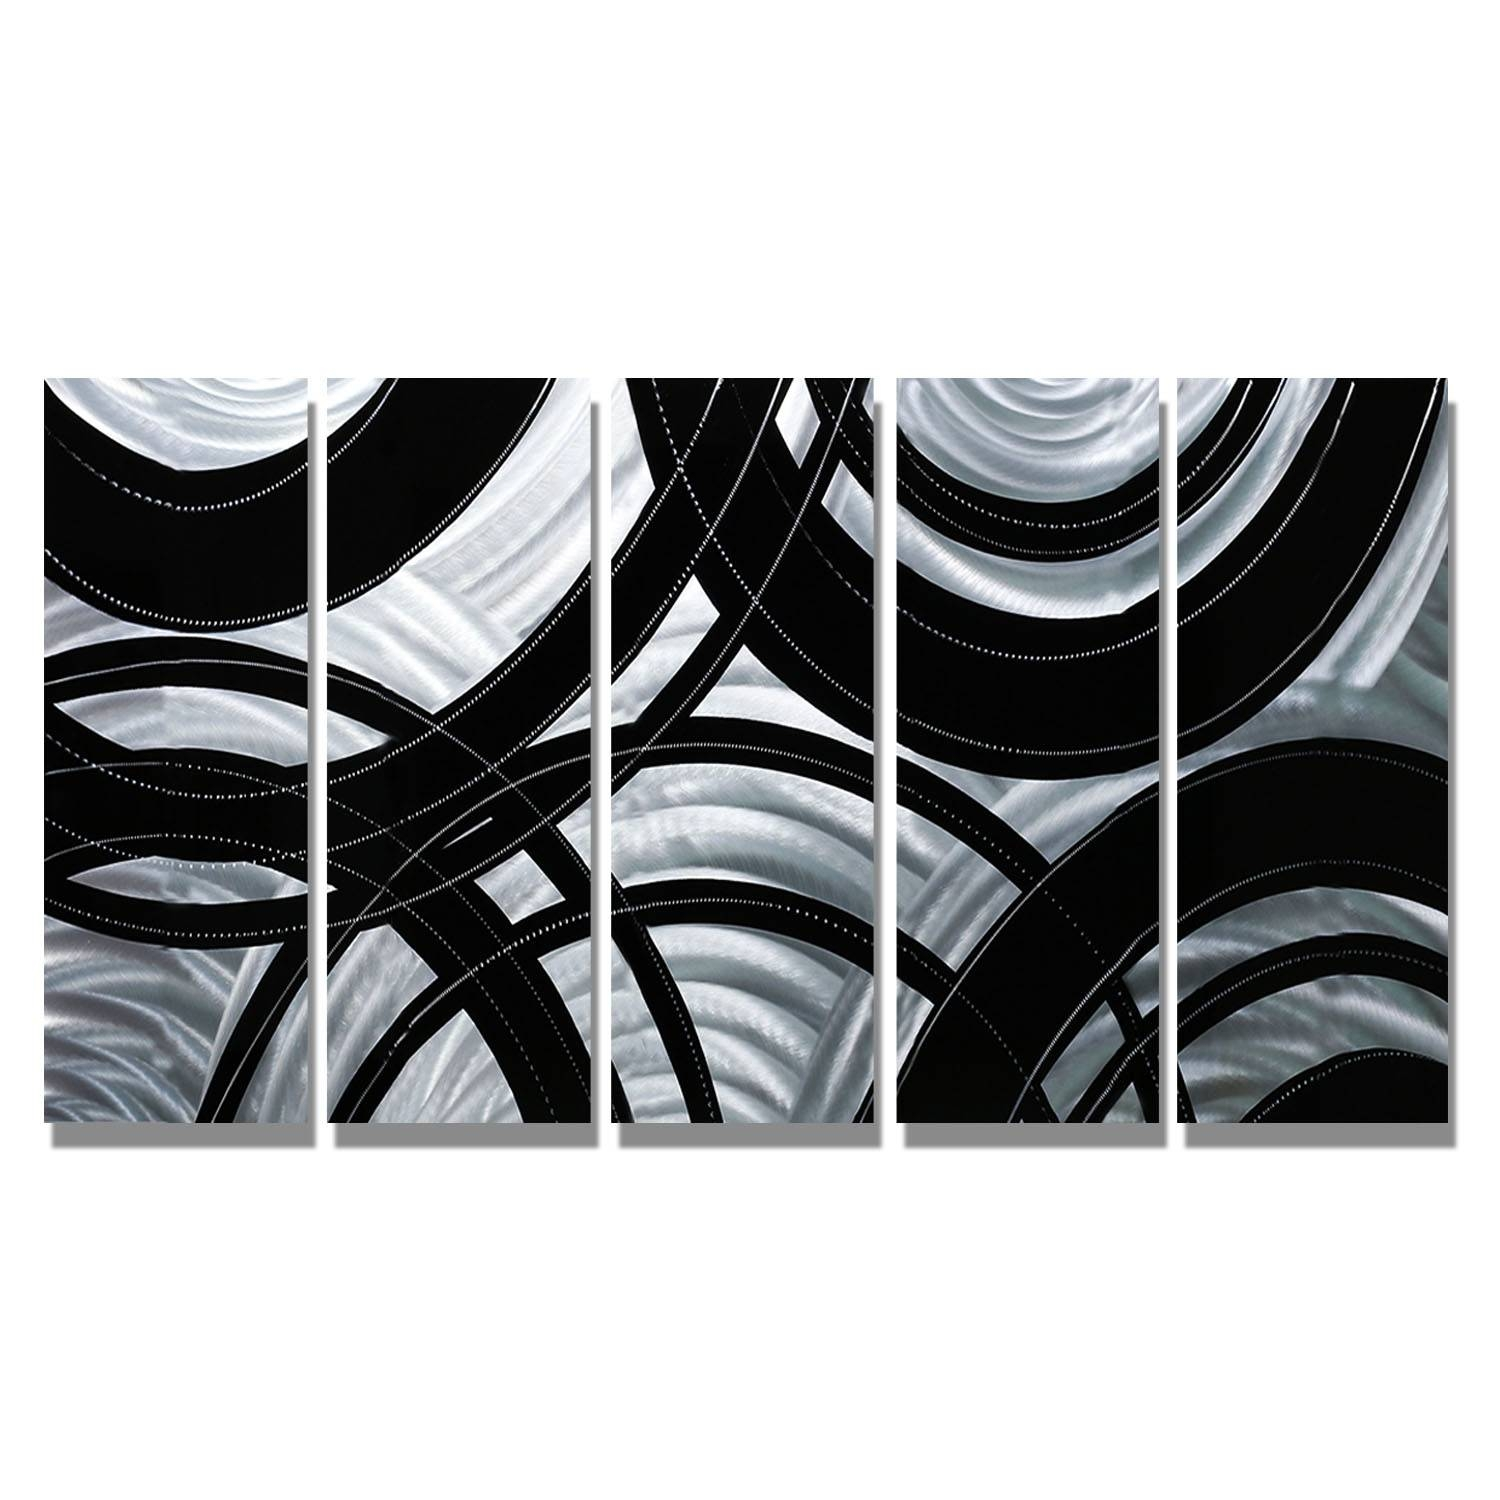 Synergy – Black And Silver Metal Wall Art – 5 Panel Wall Décor With Regard To Latest Black And Silver Metal Wall Art (View 6 of 20)